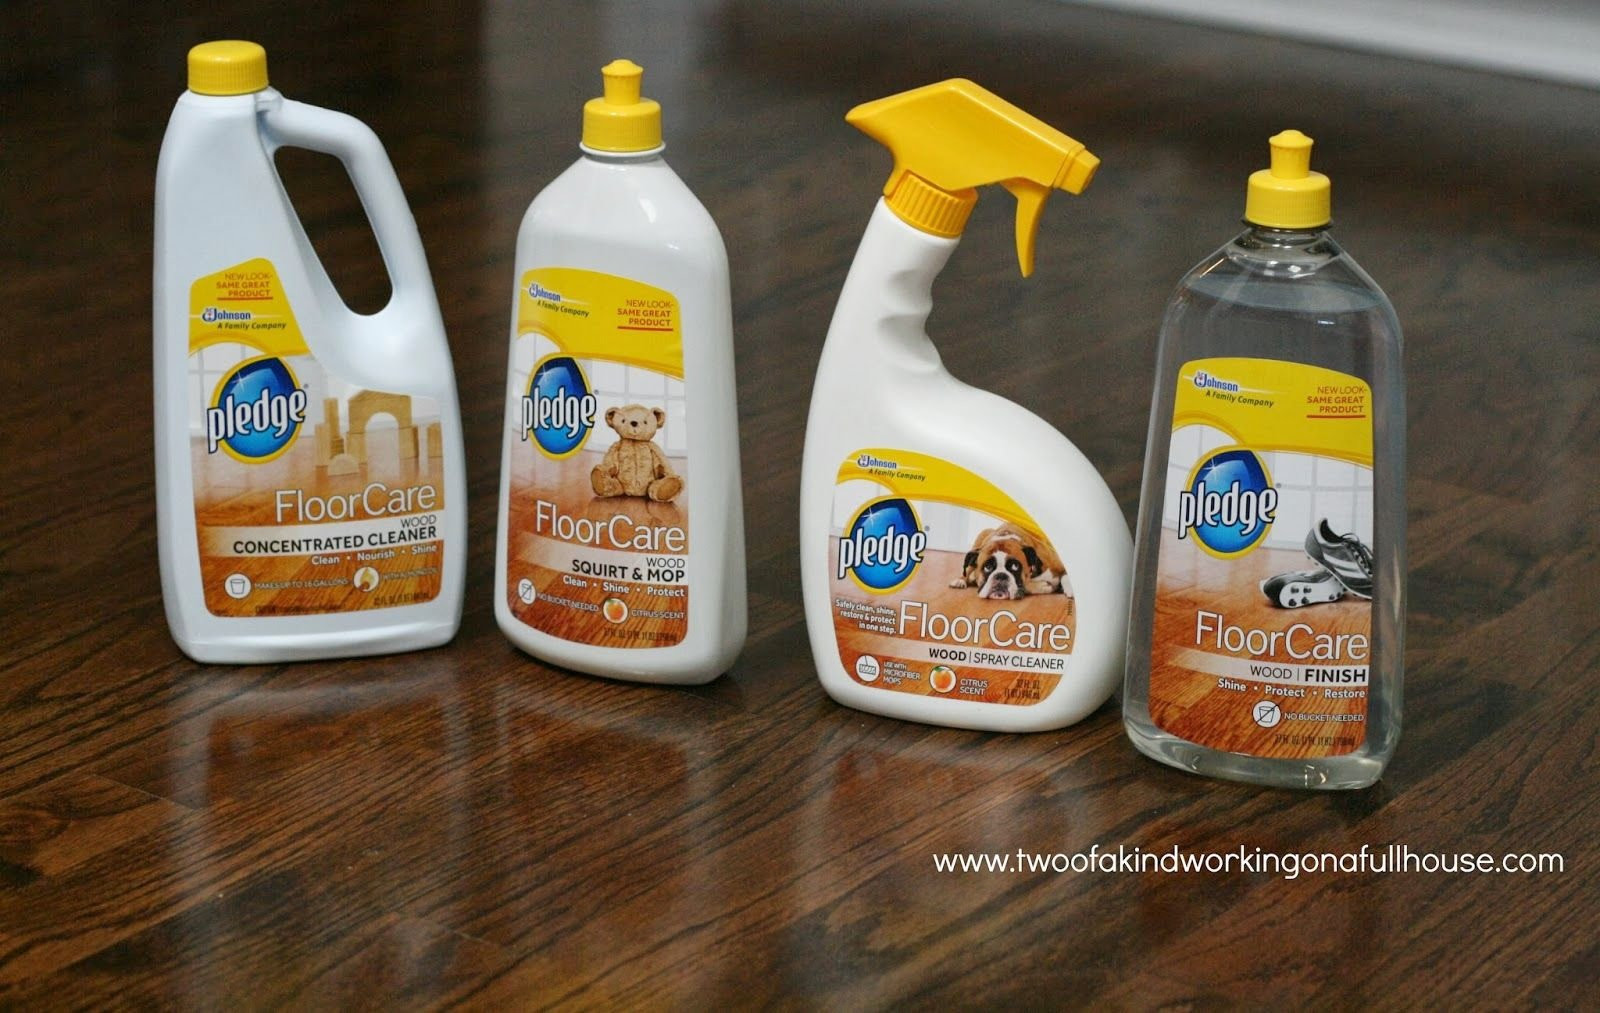 Bruce 64 Fl Oz Hardwood Floor Cleaner Of the Best Product to Clean Hardwood Floors so that Those Regarding Hardwood Floor Cleaner Cleaning Products Nice Best A· Bruce Hardwood Floor Cleaner 64 Ounce